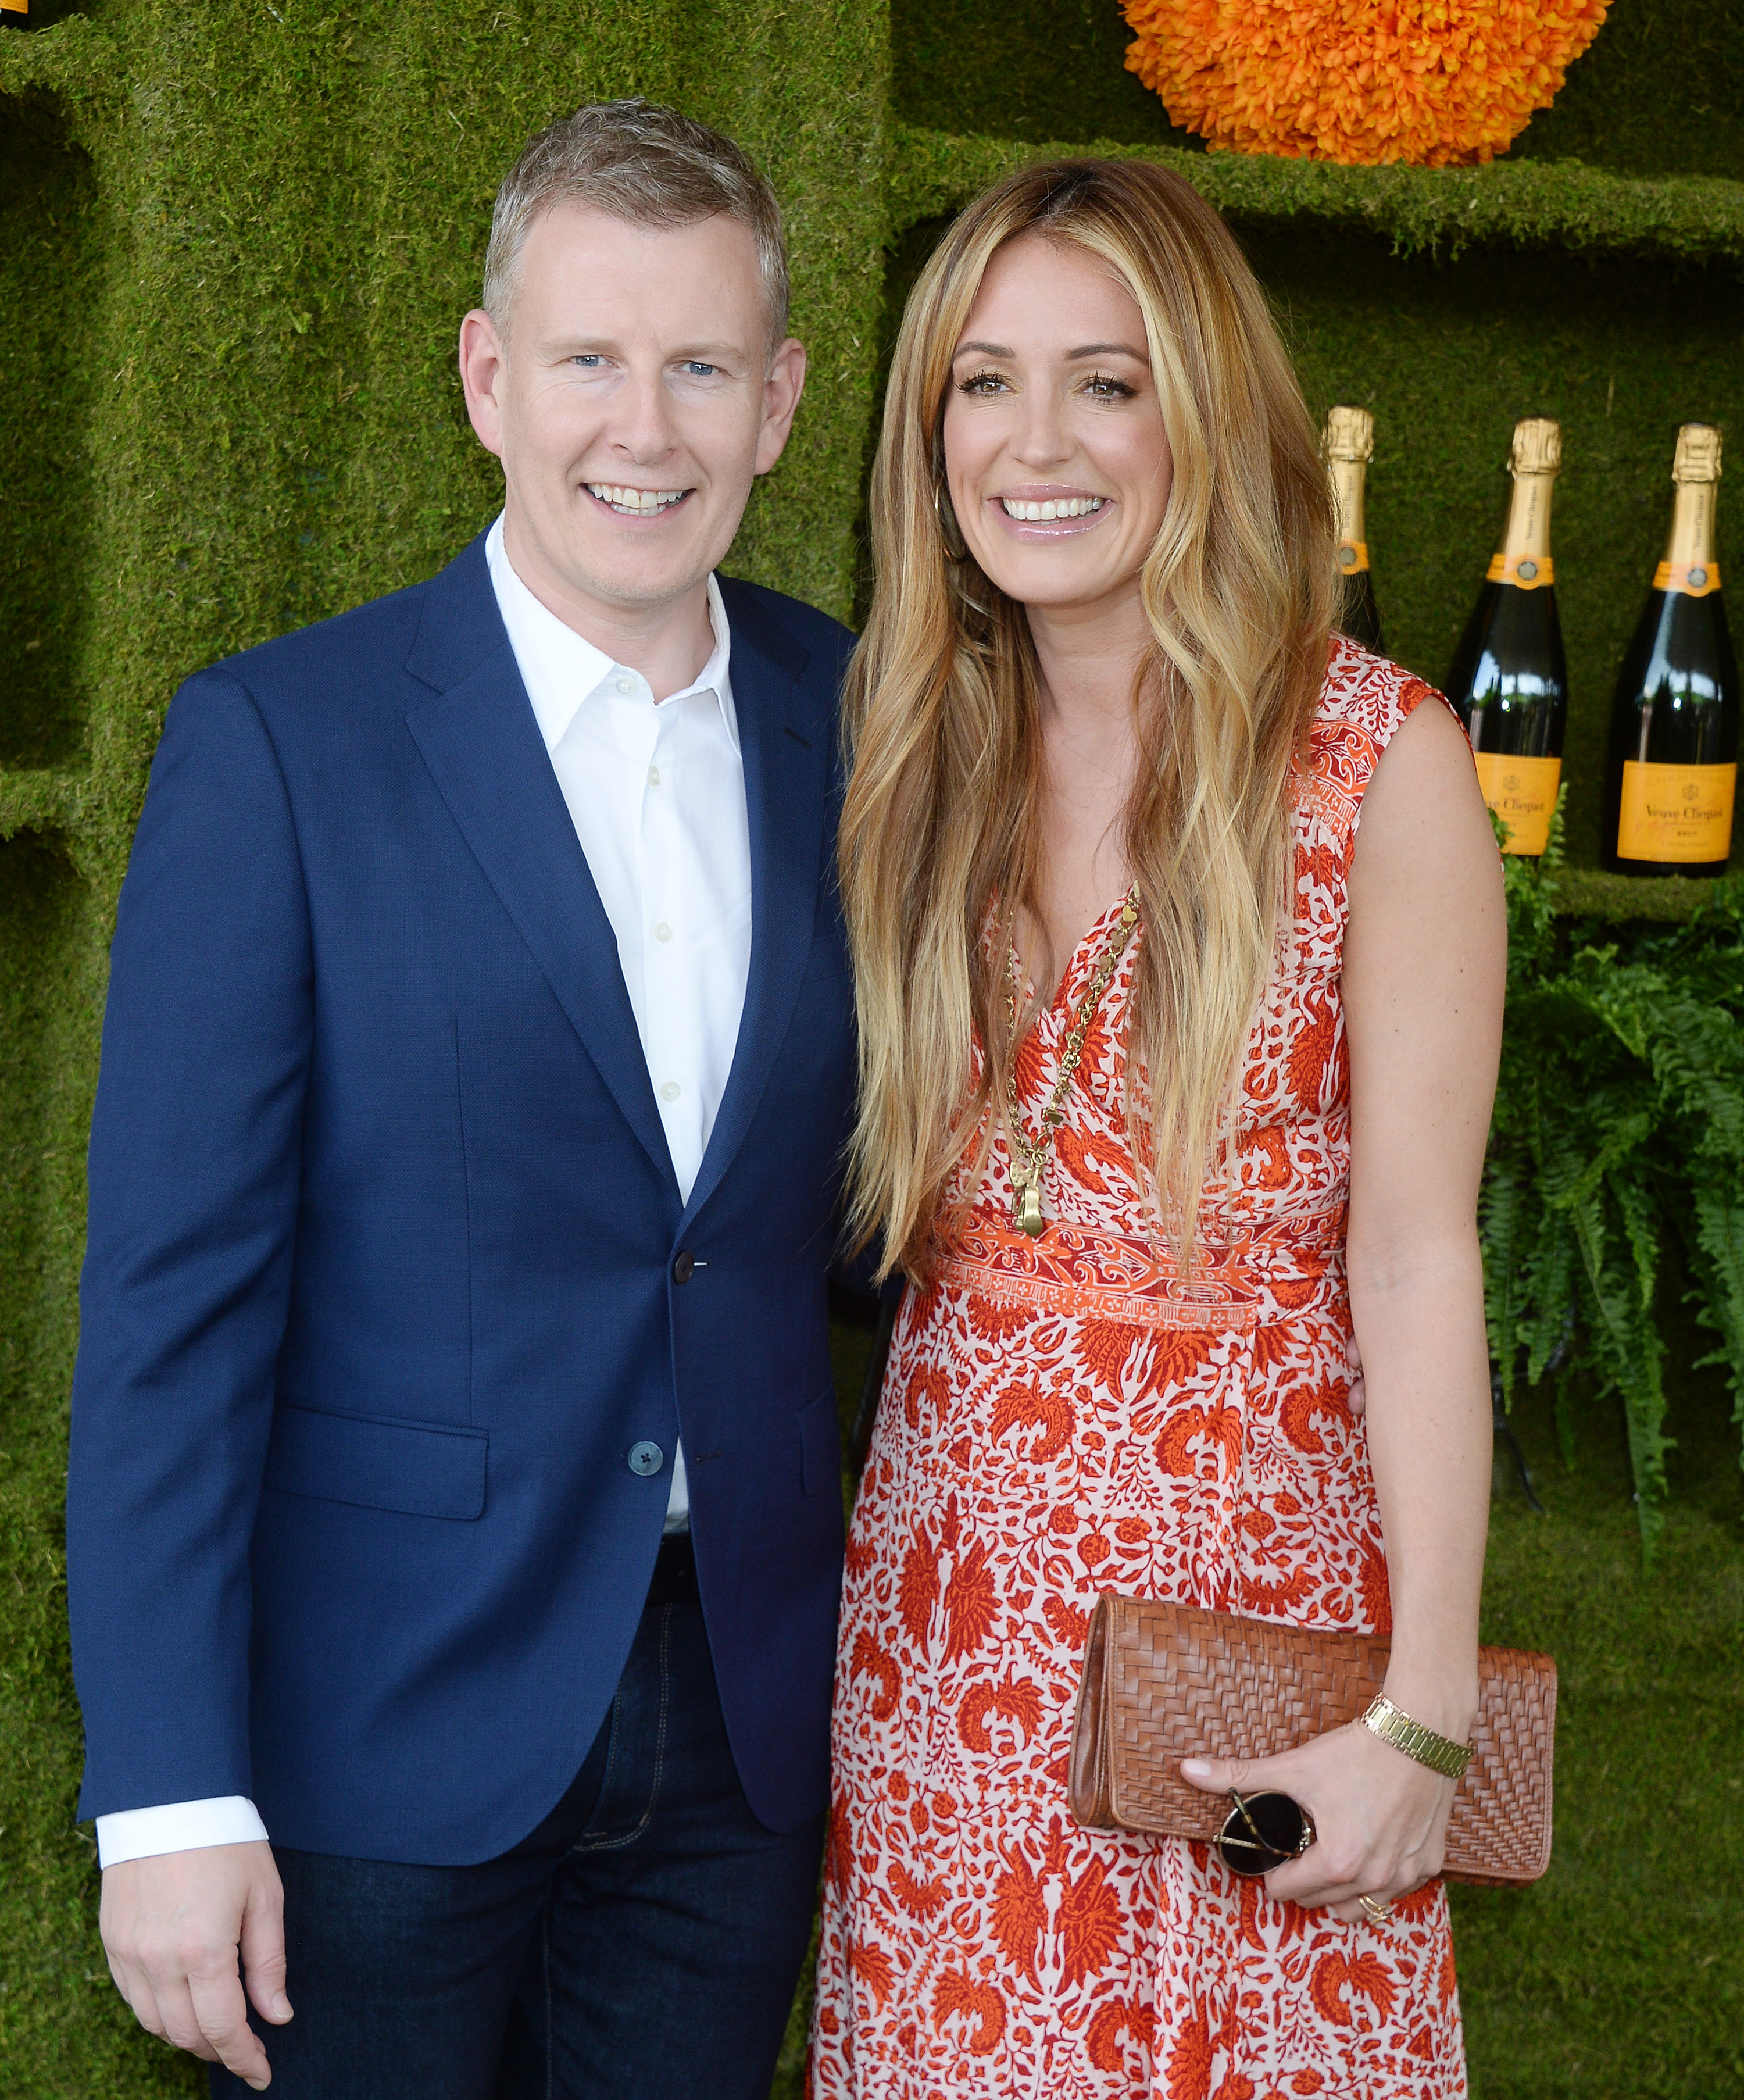 2017 Veuve Clicquot Polo Classic in Los Angeles, CA. Pictured: Cat Deeley and husband Patrick Kielty,Nacho Figueras wife Delfina Blaquier Eva Gutowski Garcelle Beauvais Lindsay Price husband Curtis Stone Sarah Chalke Cat Deeley husband Patrick Kielty Justin Hartley Chrishell Stause Lindsey Vonn Camilla Belle Katharine McPhee Victoria Justice Cara Santana Ali Larter Abigail Spencer Kate Hudson Nicole Scherzinger Lauren Graham Lauren Conrad Ref: SPL1602422 151017 NON-EXCLUSIVE Picture by: SplashNews.com Splash News and Pictures Los Angeles: 310-821-2666 New York: 212-619-2666 London: 0207 644 7656 Milan: 02 4399 8577 photodesk@splashnews.com World Rights, No Belgium Rights, No Brazil Rights, No France Rights, No Japan Rights, No Netherlands Rights, No Poland Rights